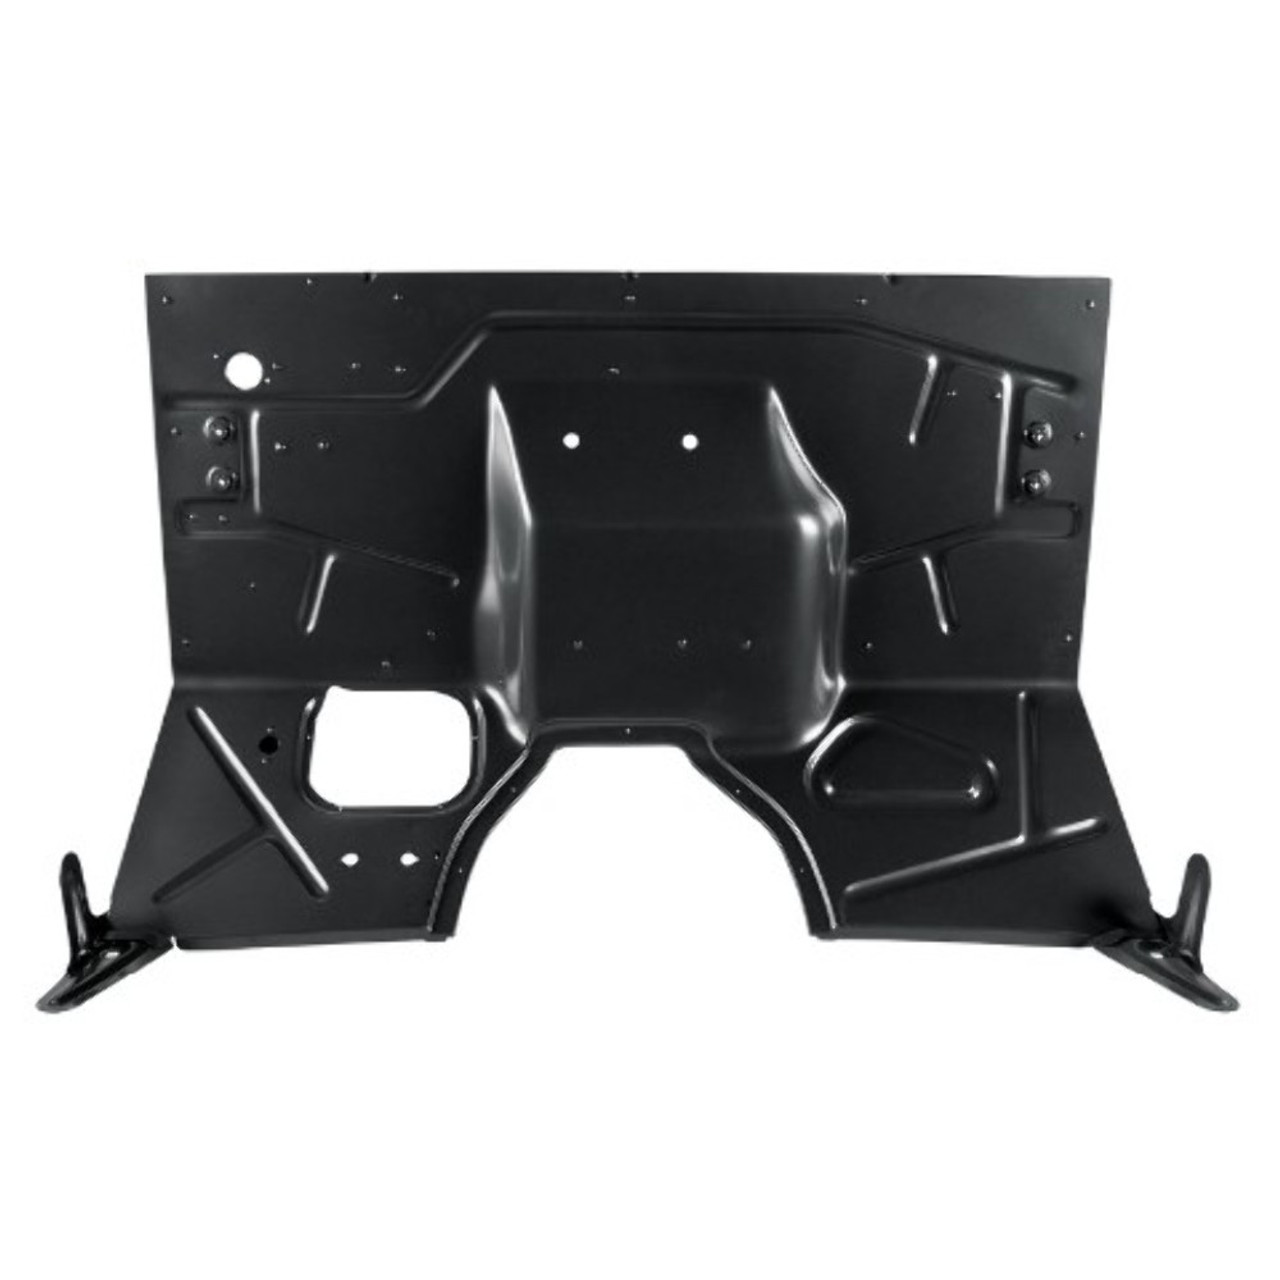 1948-52 Ford Truck Firewall Assembly With Support Brackets